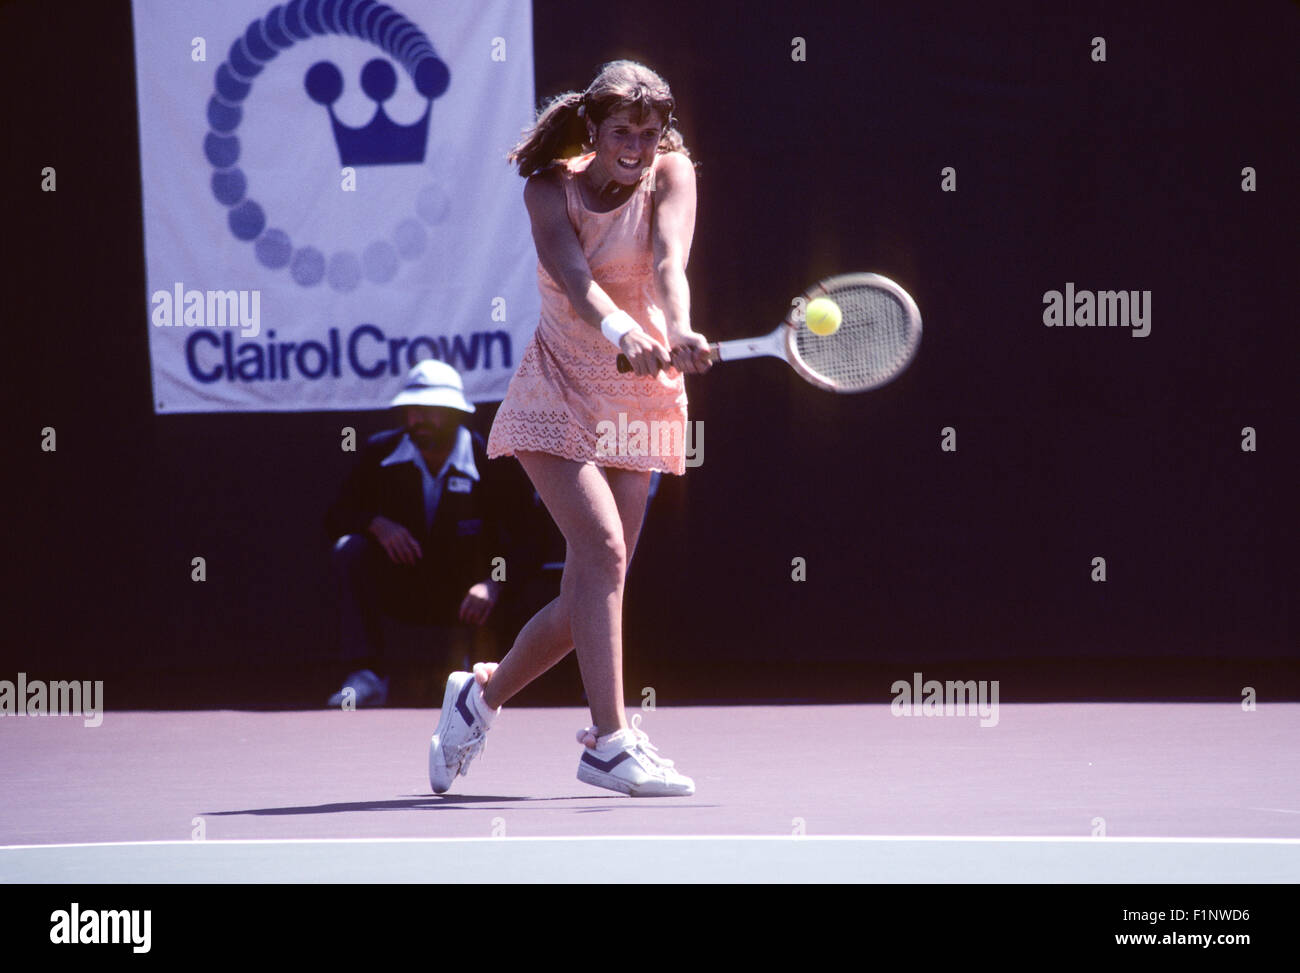 Tracy Austin in action at the Clairol Crown tennis tournament at